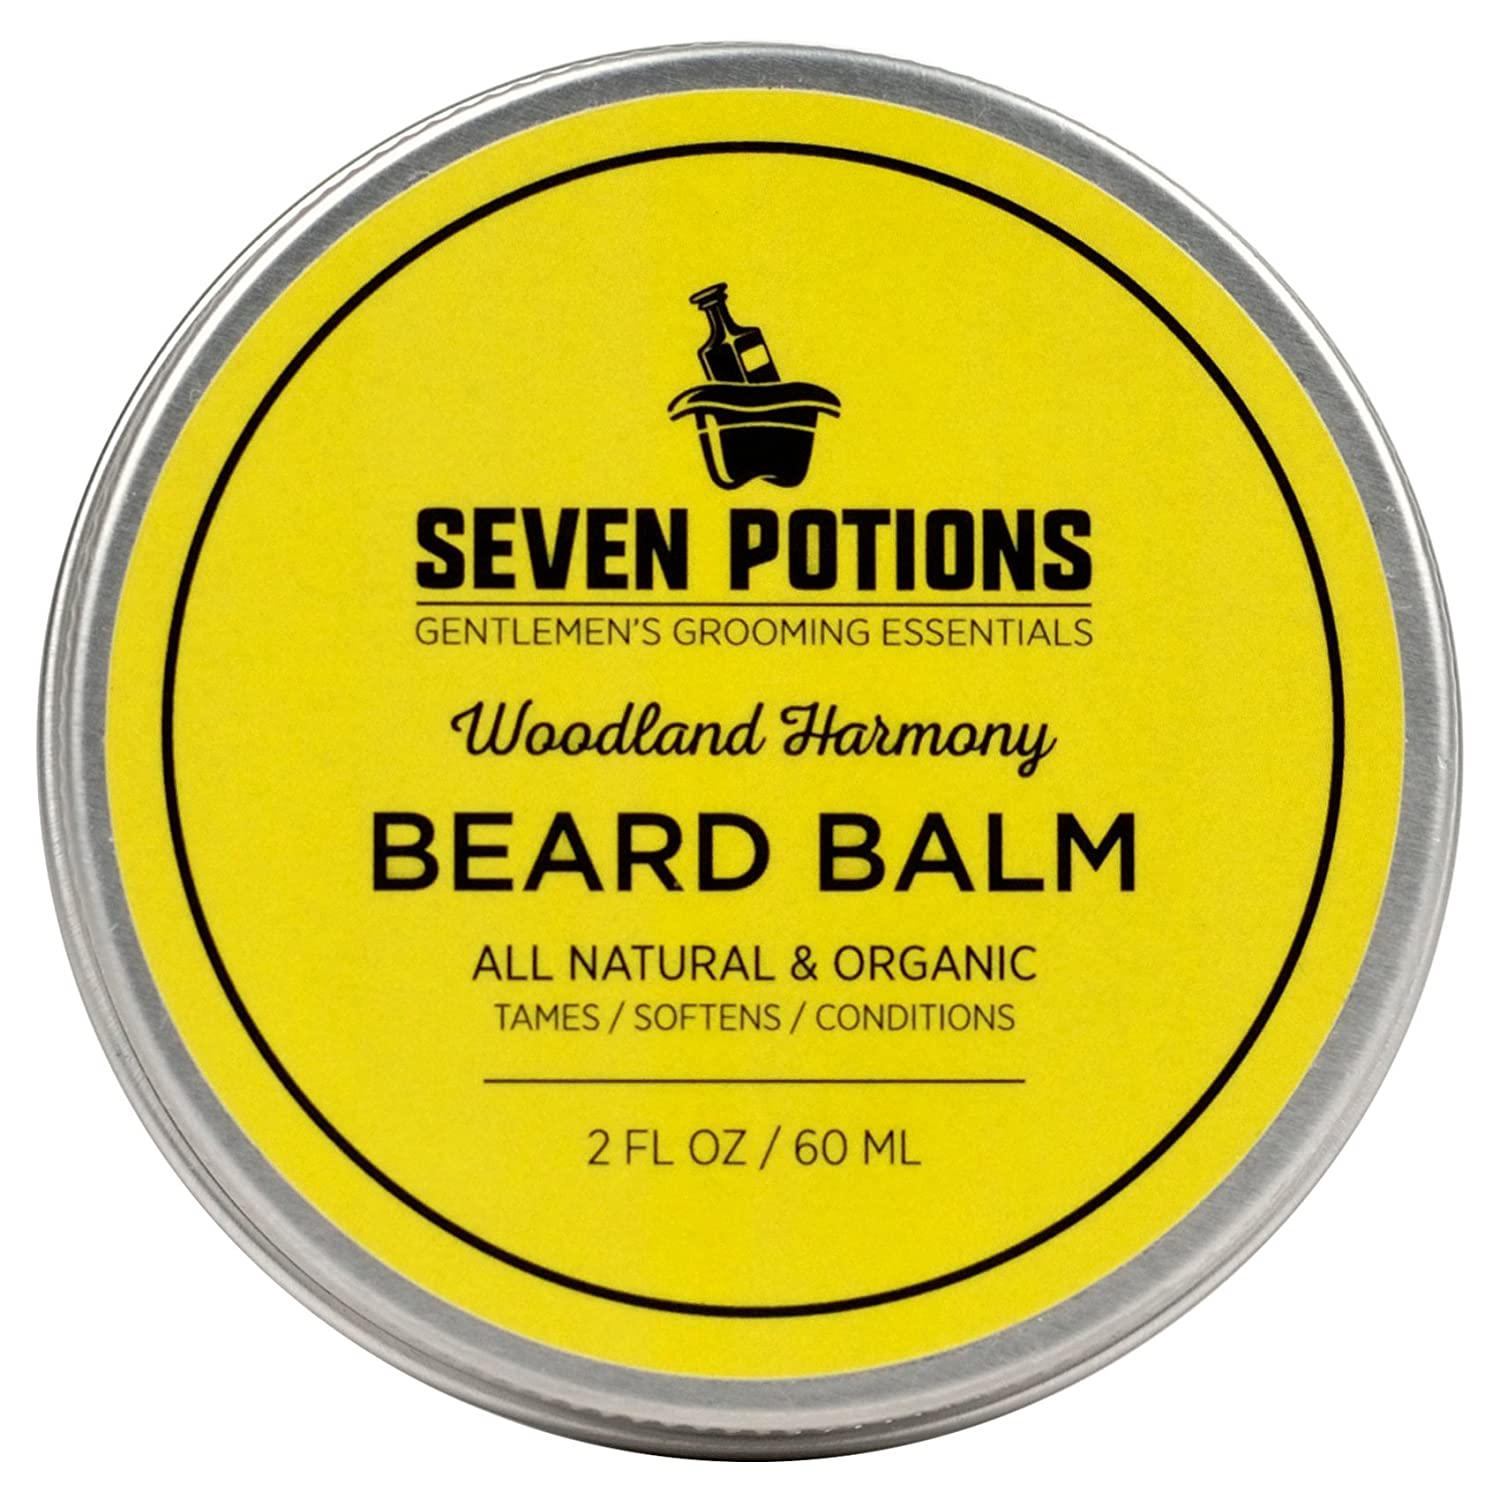 Beard Balm 60ml All Natural, Organic, Cruelty Free. Nourishes the Skin & Makes Your Beard Soft. Stops Beard Itch, Leaves it Naturally Shiny & Healthy. With Jojoba Oil (Citrus Tonic) Seven Potions